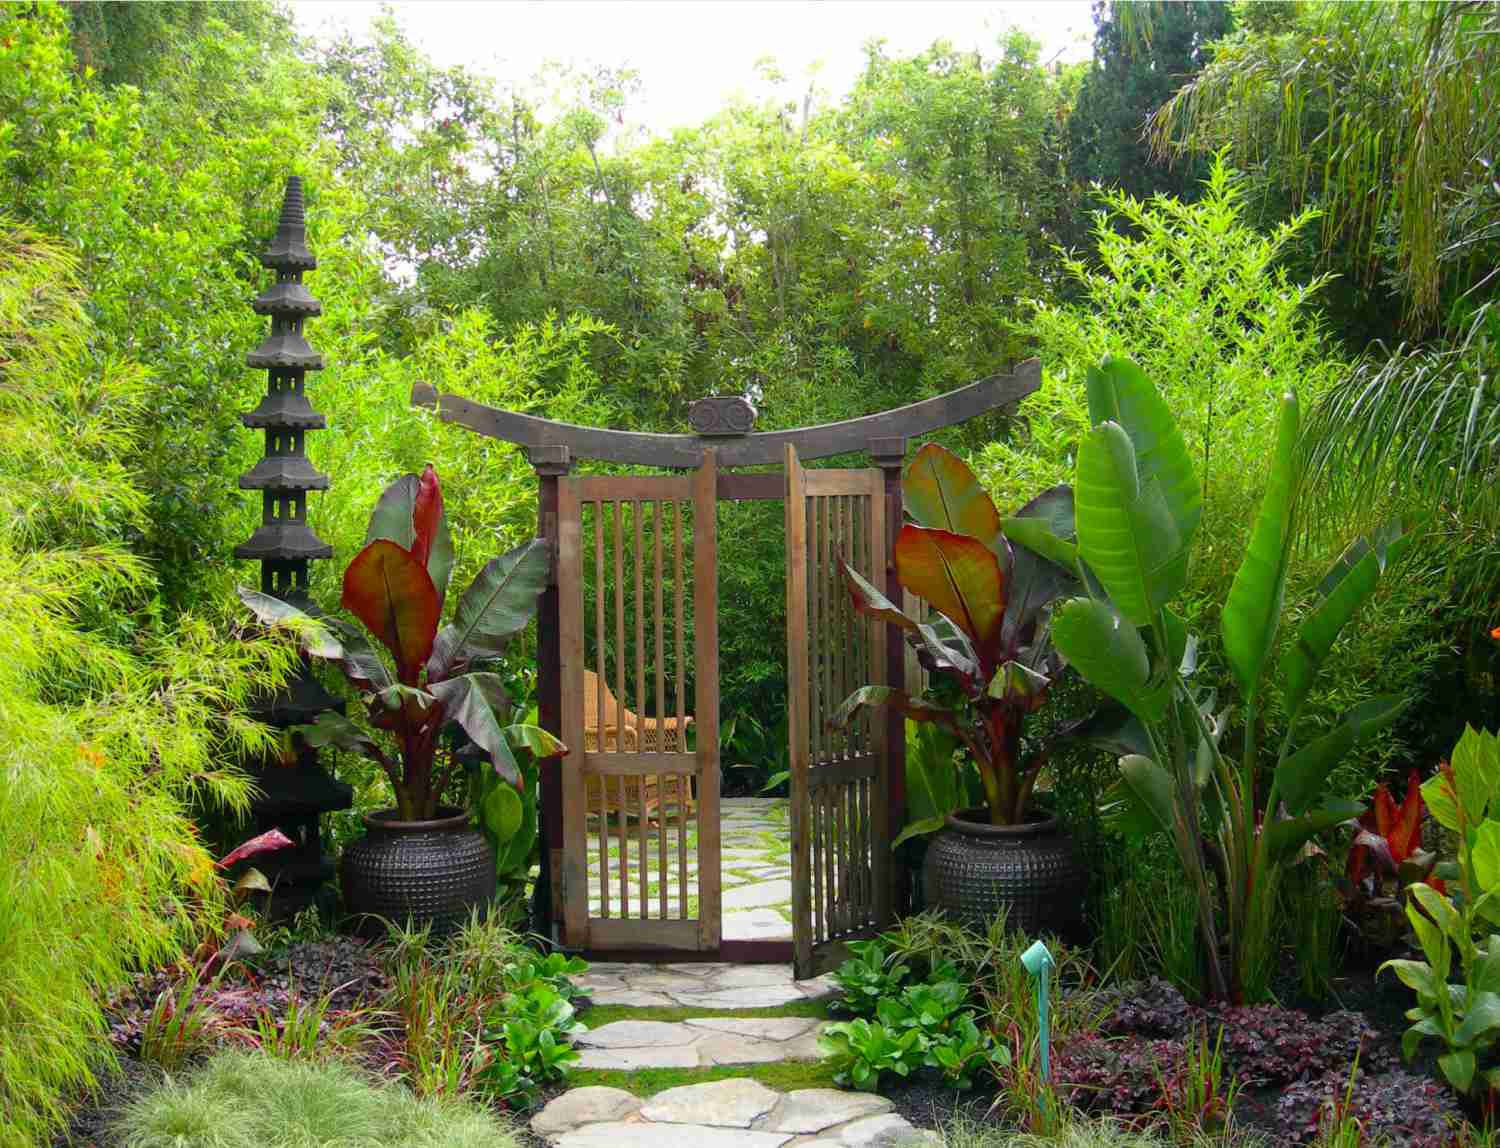 Vertical garden near stone walkway with doors leading to more space.